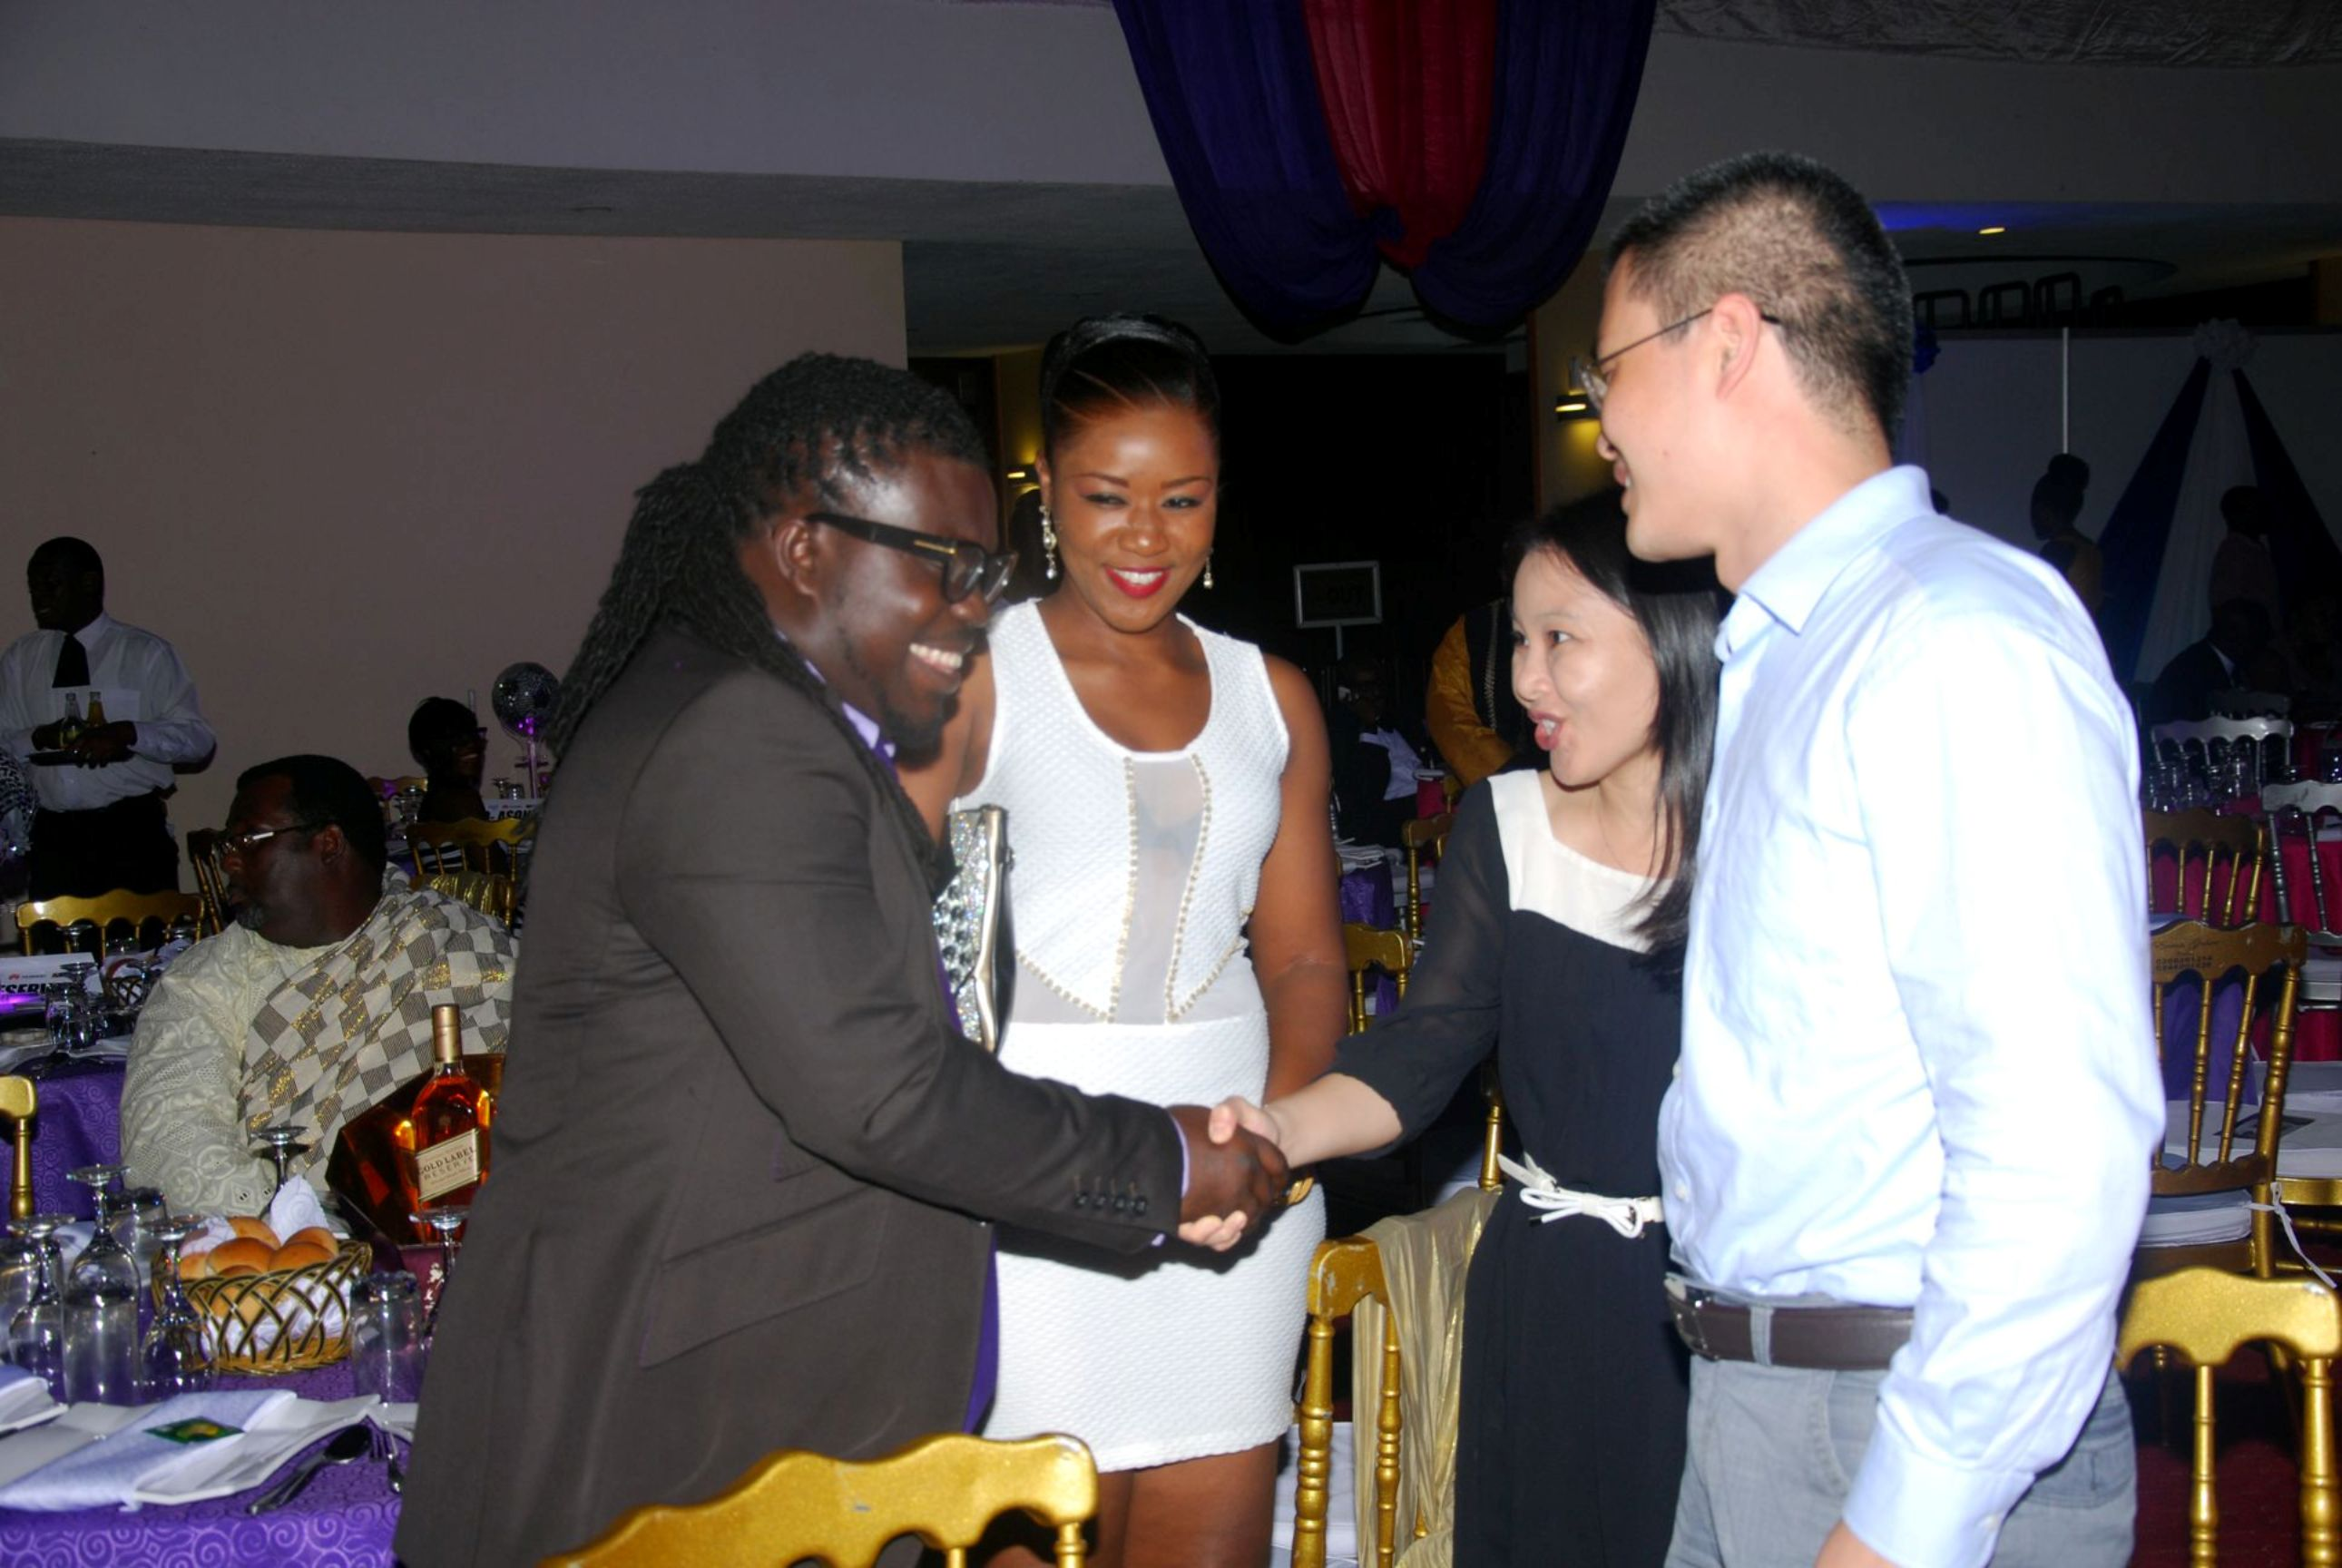 obour with Huawei guests